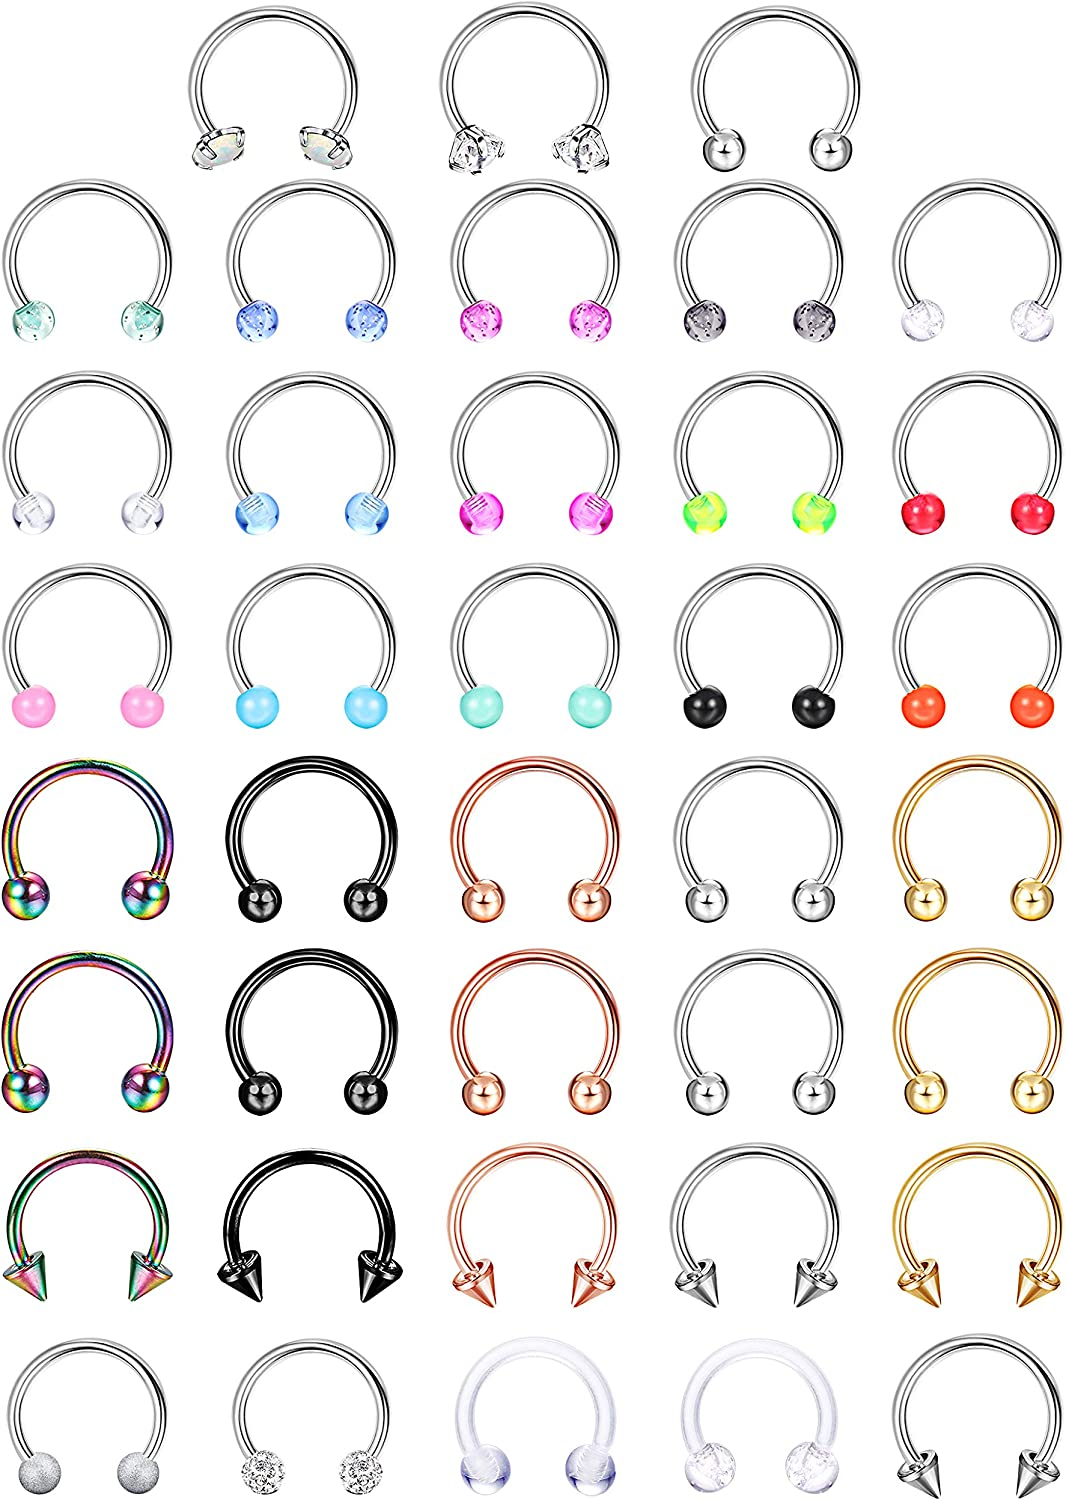 sailimue 38Pcs 16G Surgical Steel Nose Septum Rings Piercing Jewelry Cartilage Helix Tragus Earring Hoop Eyebrow Lip Horseshoe Retainer for Women Men